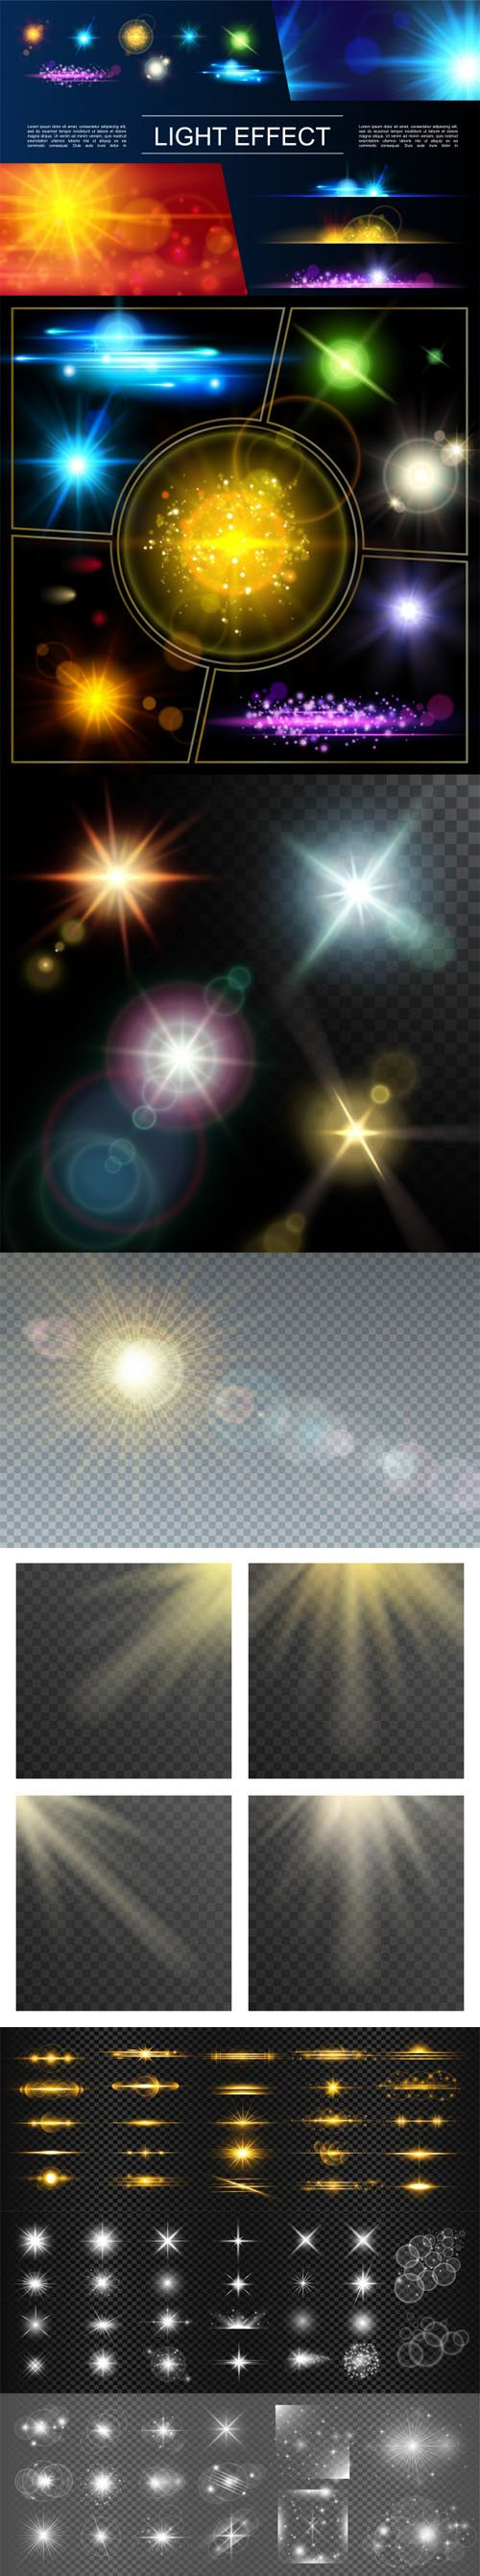 8 Realistic Light Effects Vector Templates